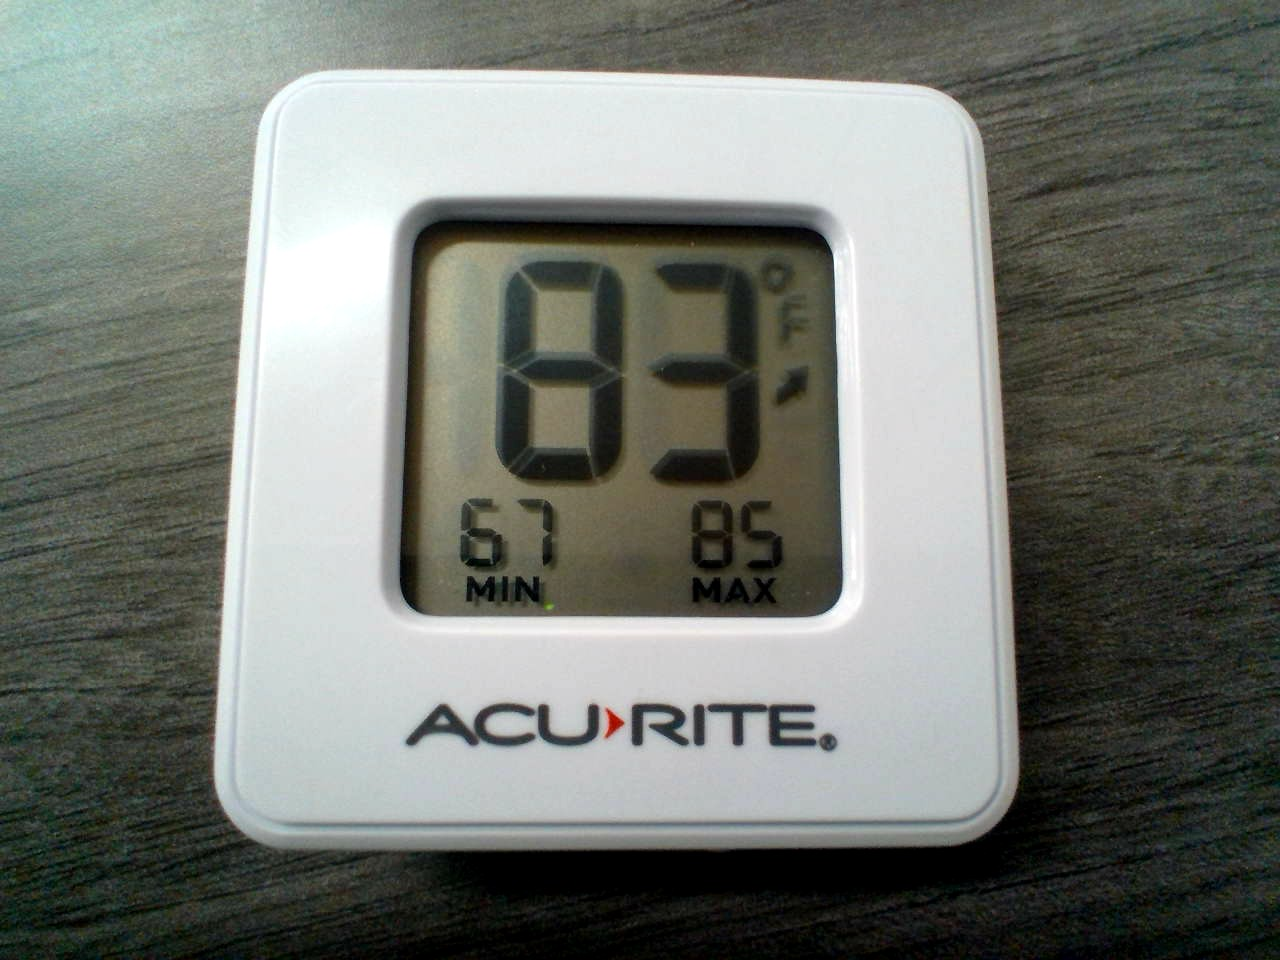 Holy smokes! The thermometer shows a high temperature of 83 degrees. This was one of the highest temperatures observed.